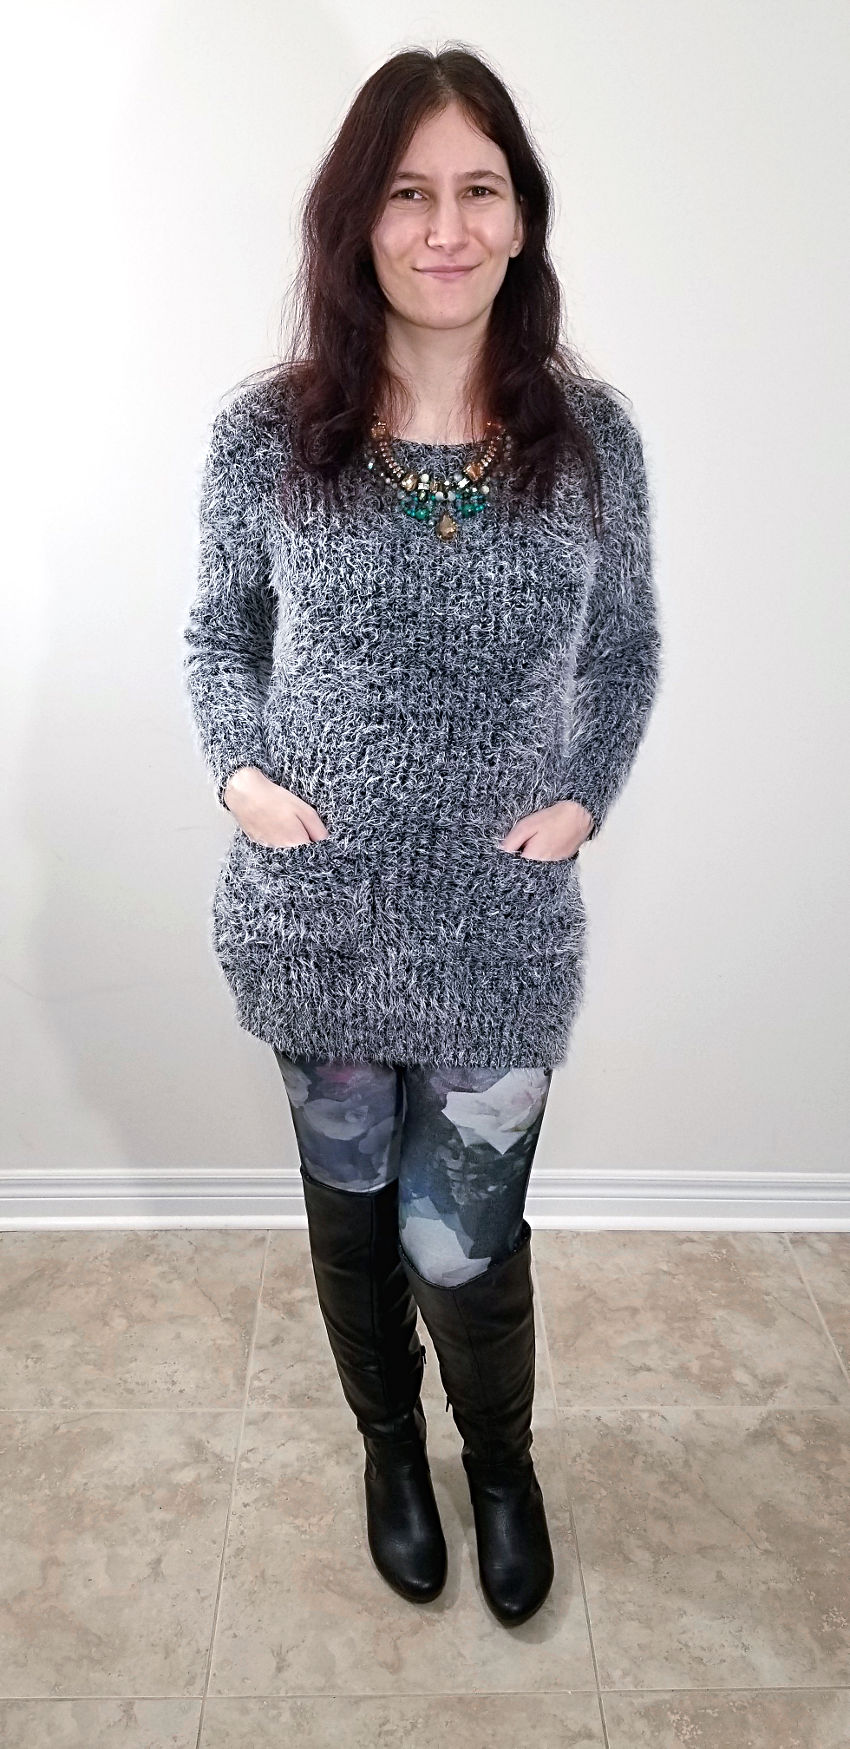 Winter Dressing Fuzzy Grey Sweater Dress Floral Leggings Green Necklace and Tall Boots ...